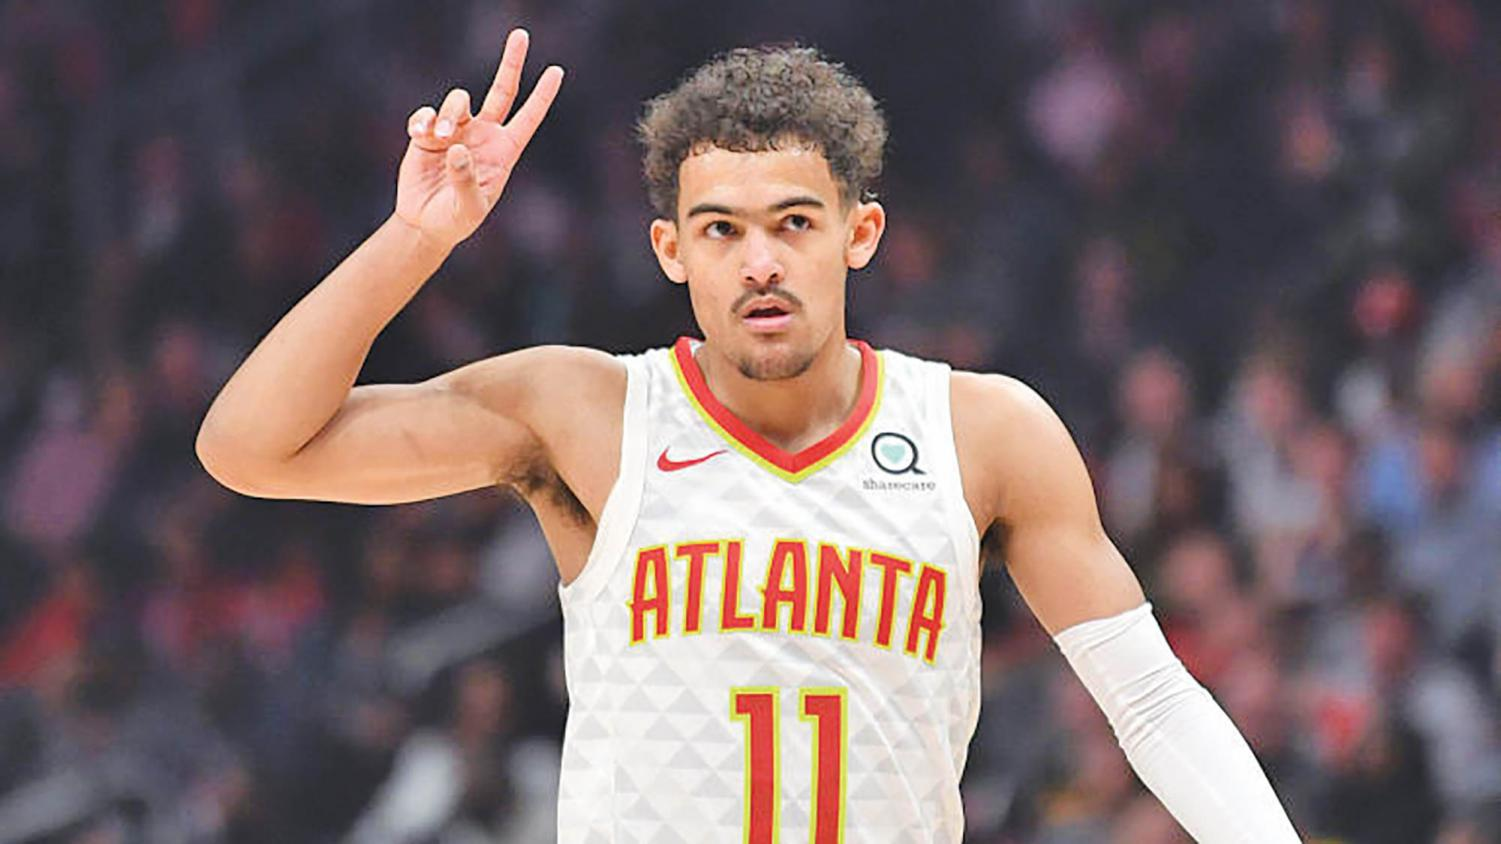 With his playmaking abilities and sharp-shooting, Trae Young has developed into one of this year's outstanding rookies. Young is set to be the Hawks' next franchise player to build around.